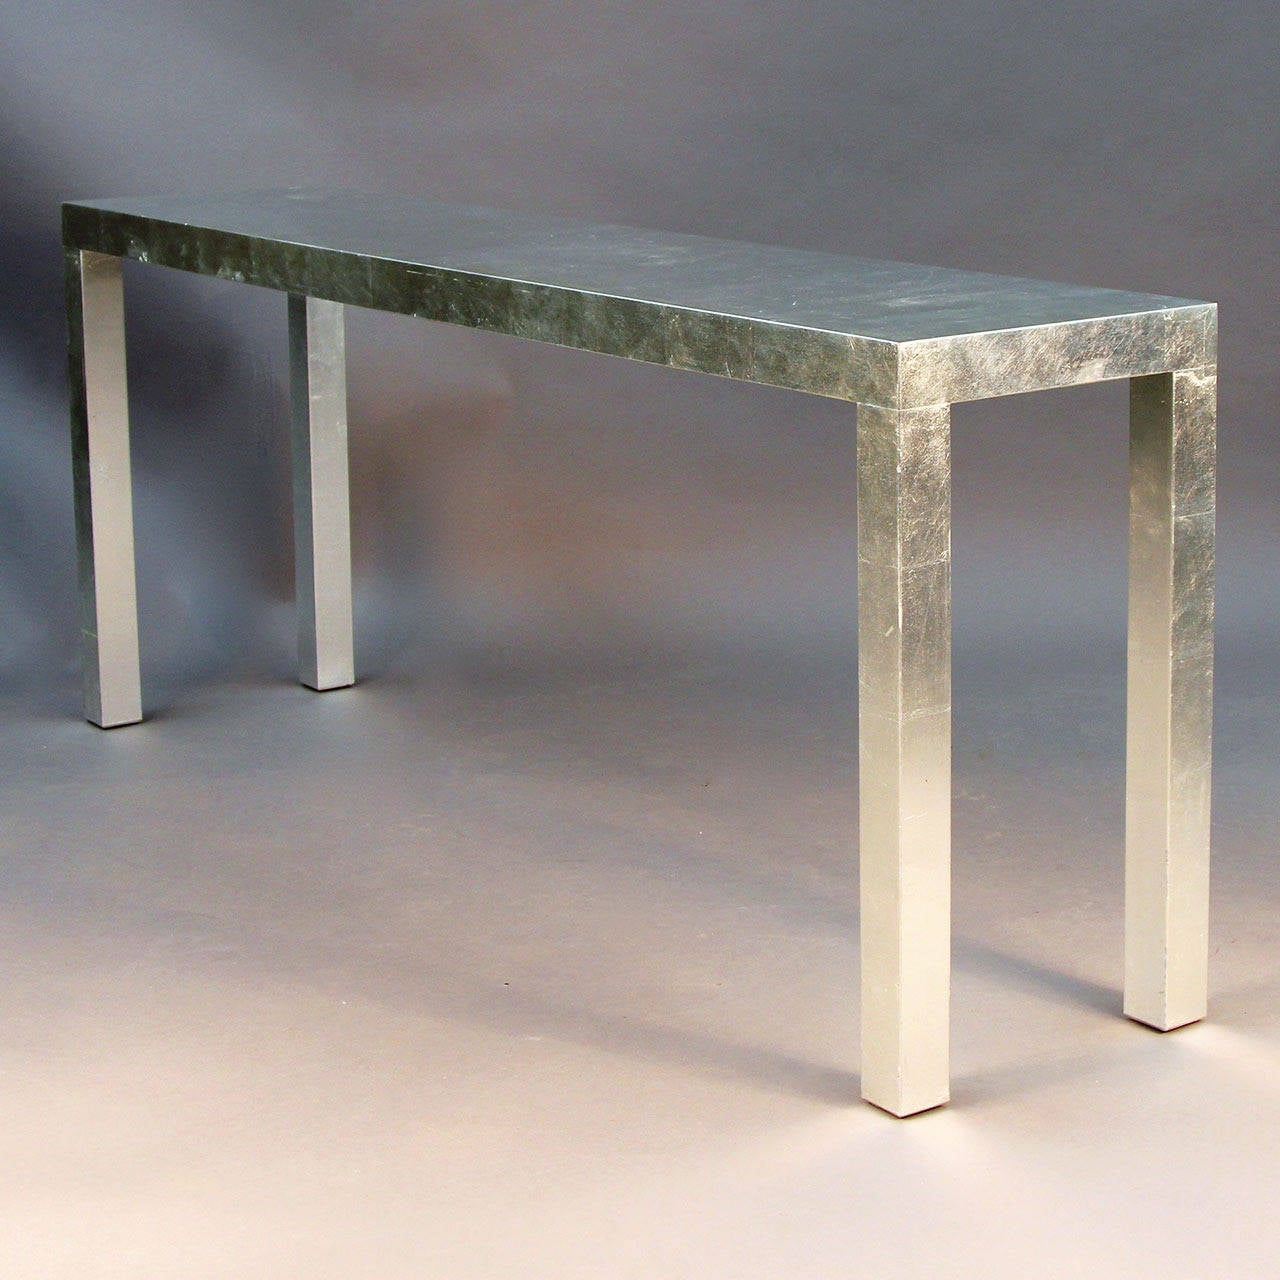 Striking Modern Silver Leaf Display Console Or Sofa Table Is Elegant In Its Simplicity Lovely